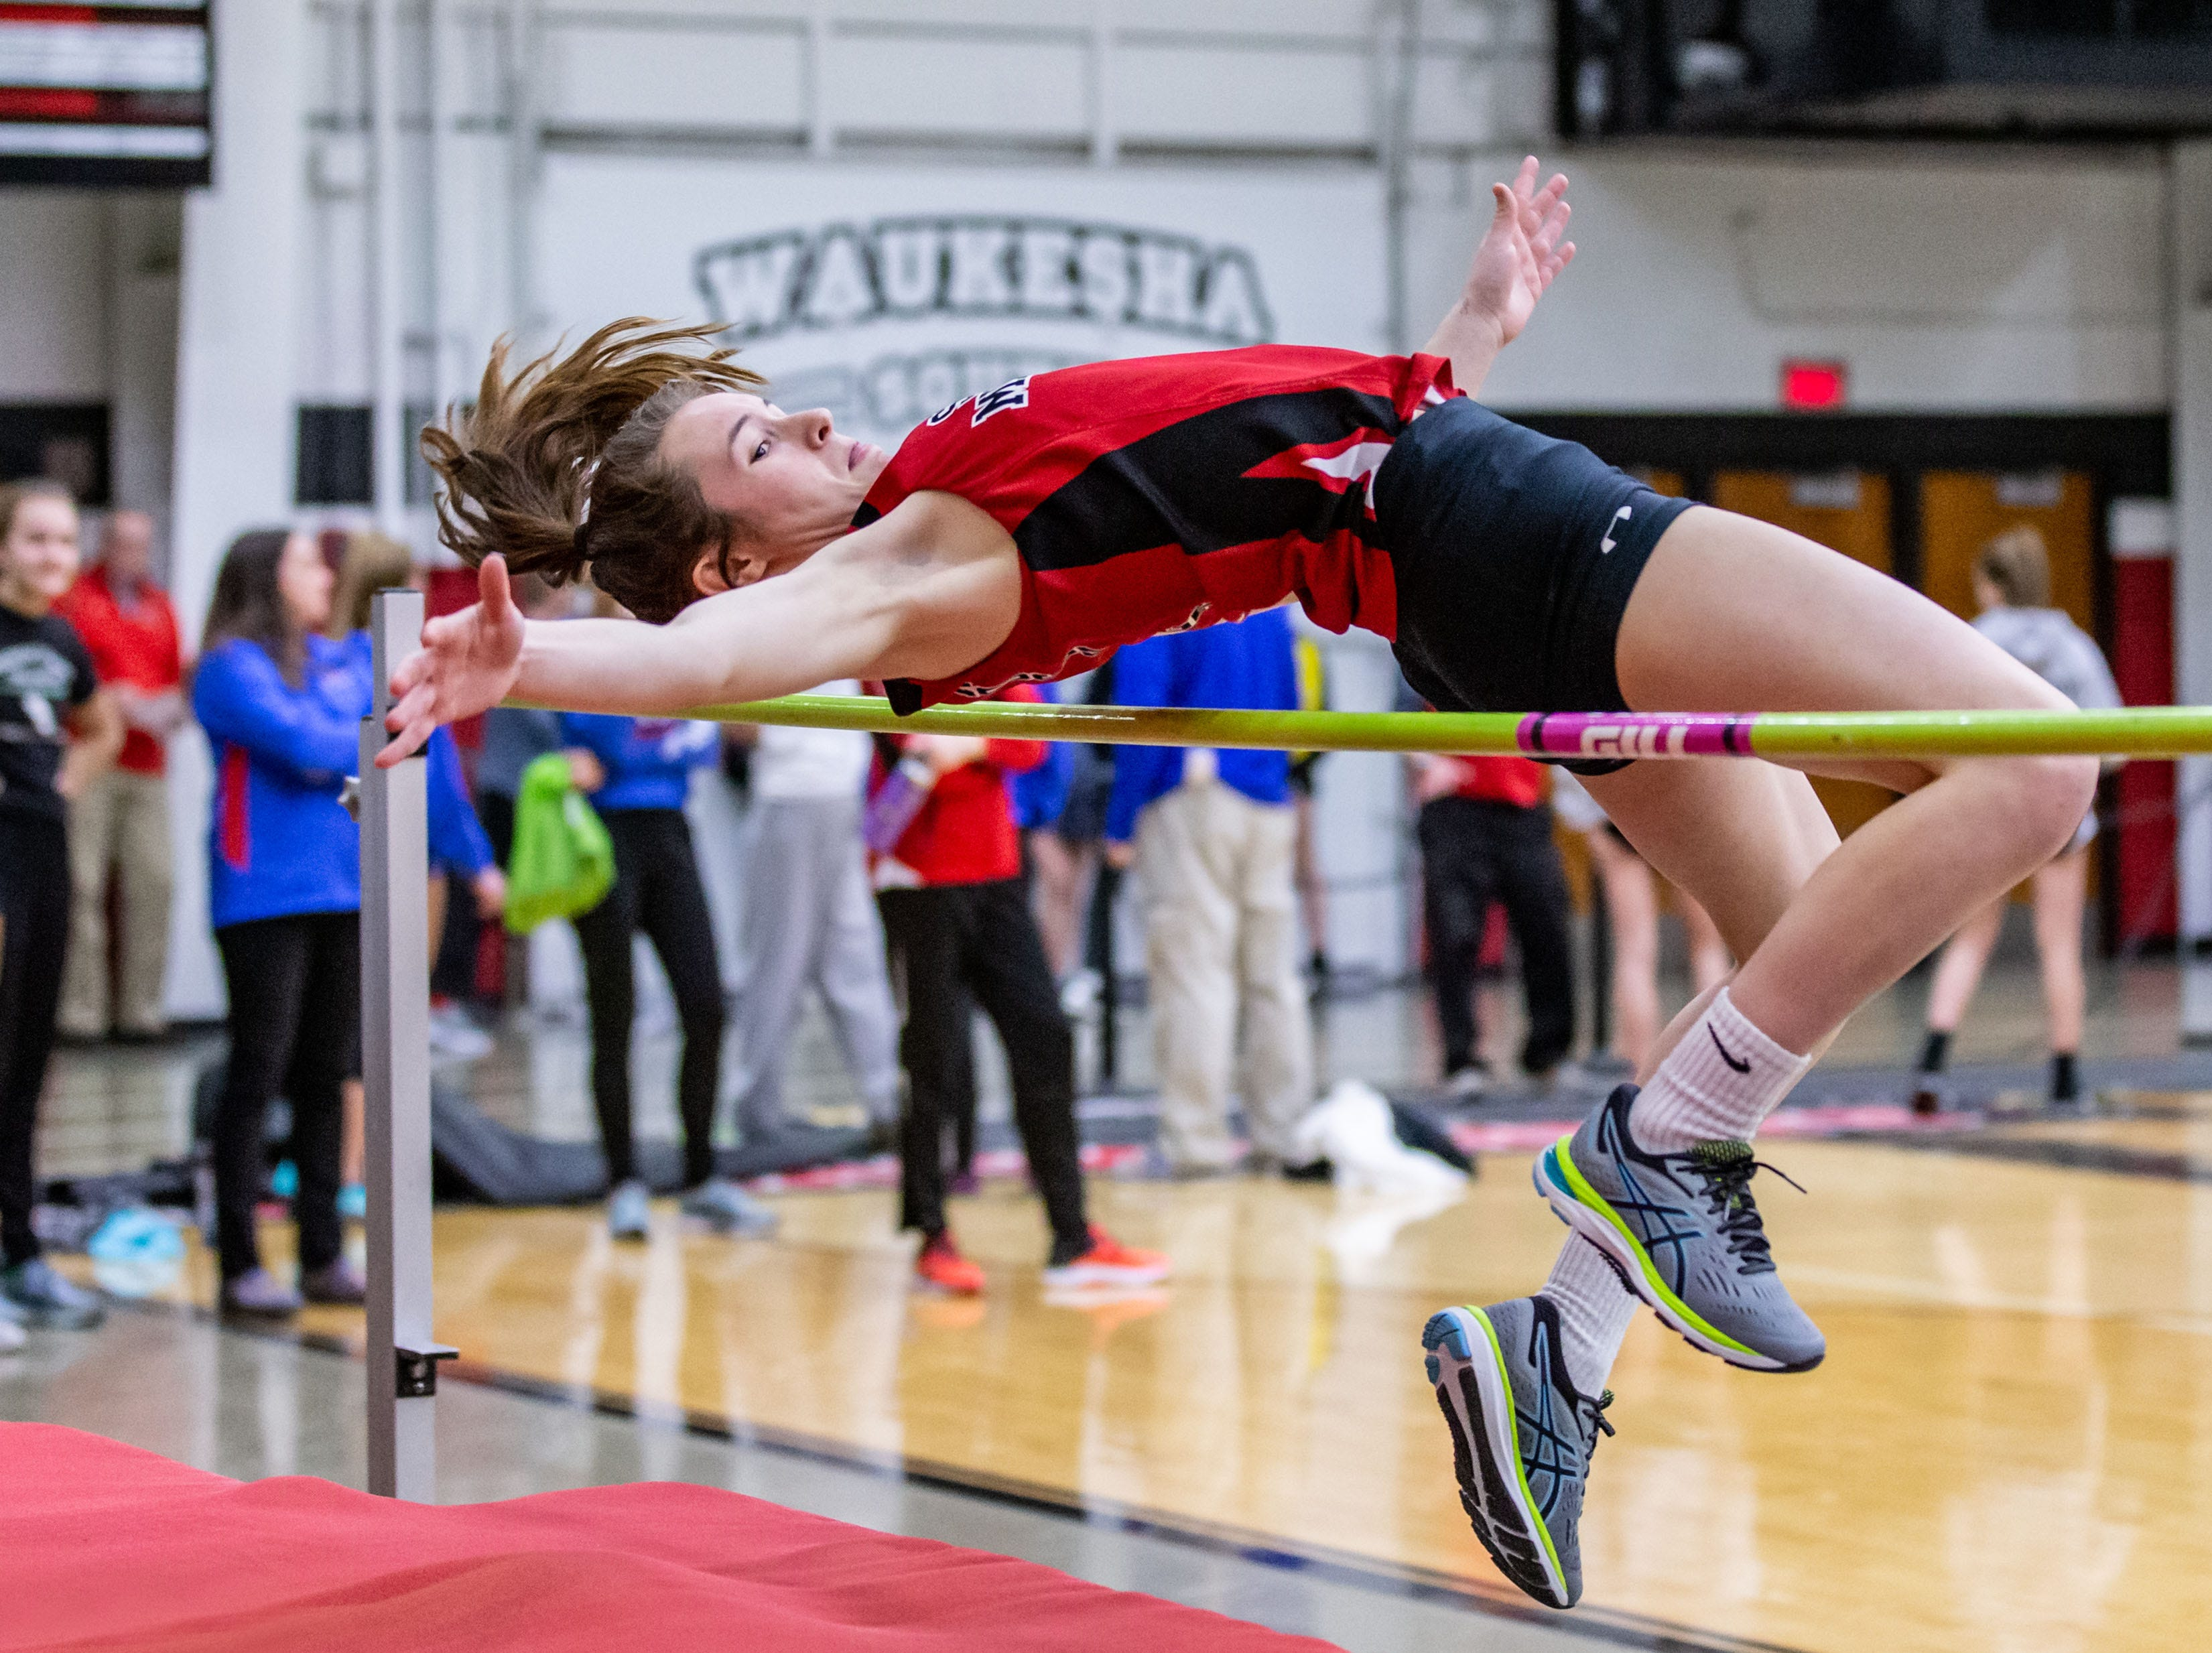 South Milwaukee's Keegan Schell competes in the high jump at the Peter Rempe Cardinal Relays hosted by Waukesha South on Thursday, March 21, 2019.